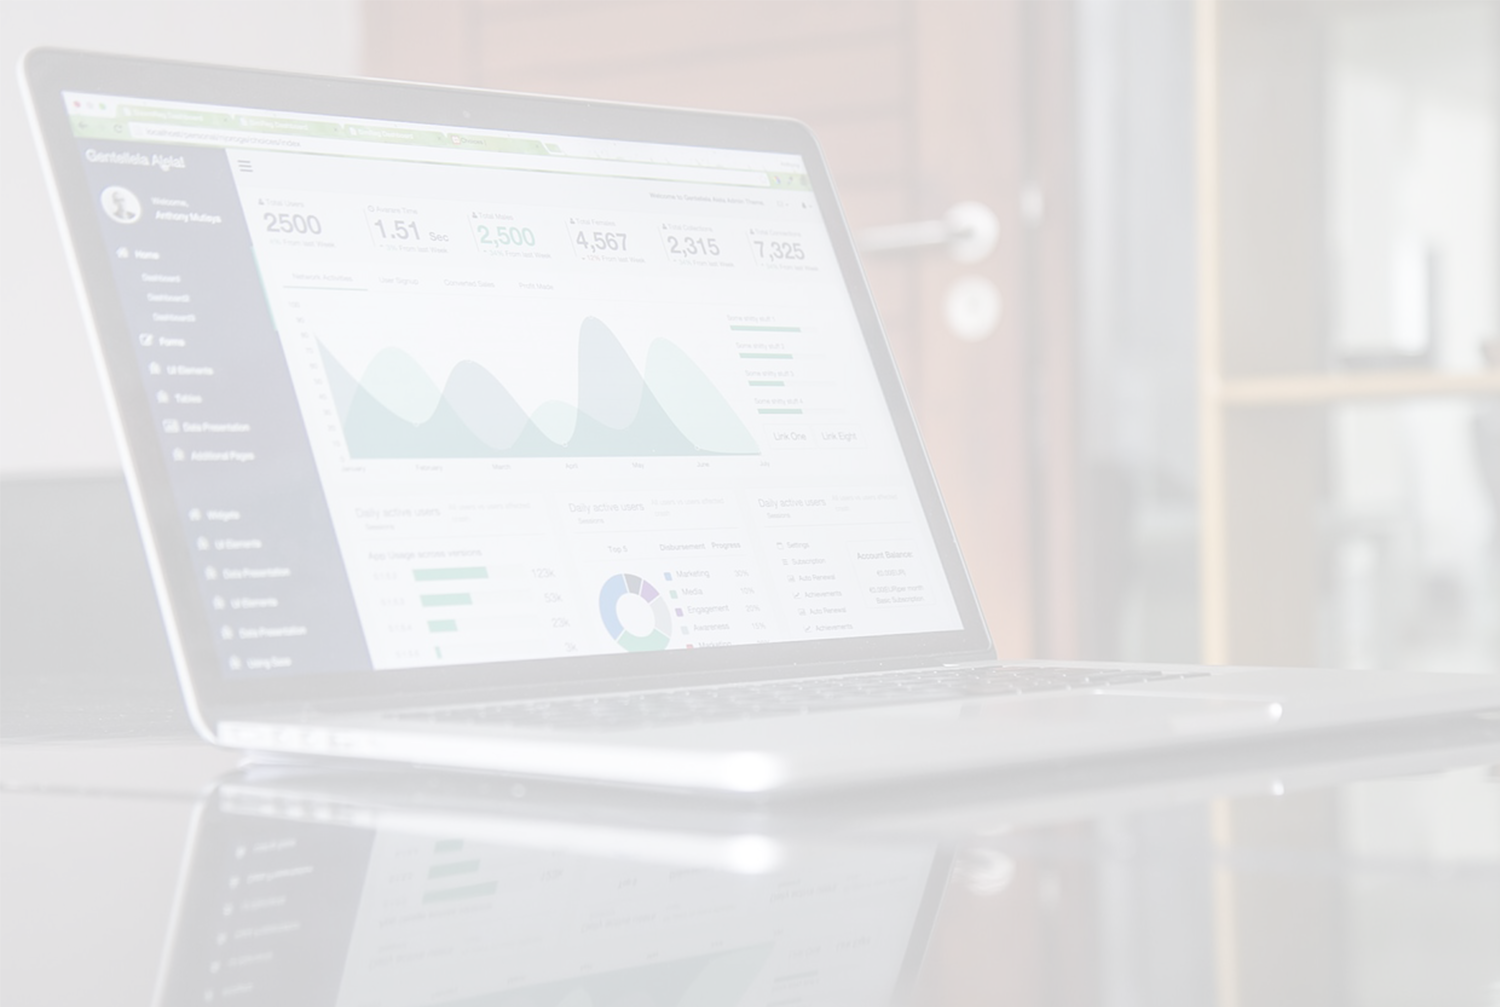 Advanced Threat Analytics Overview – Features & Benefits